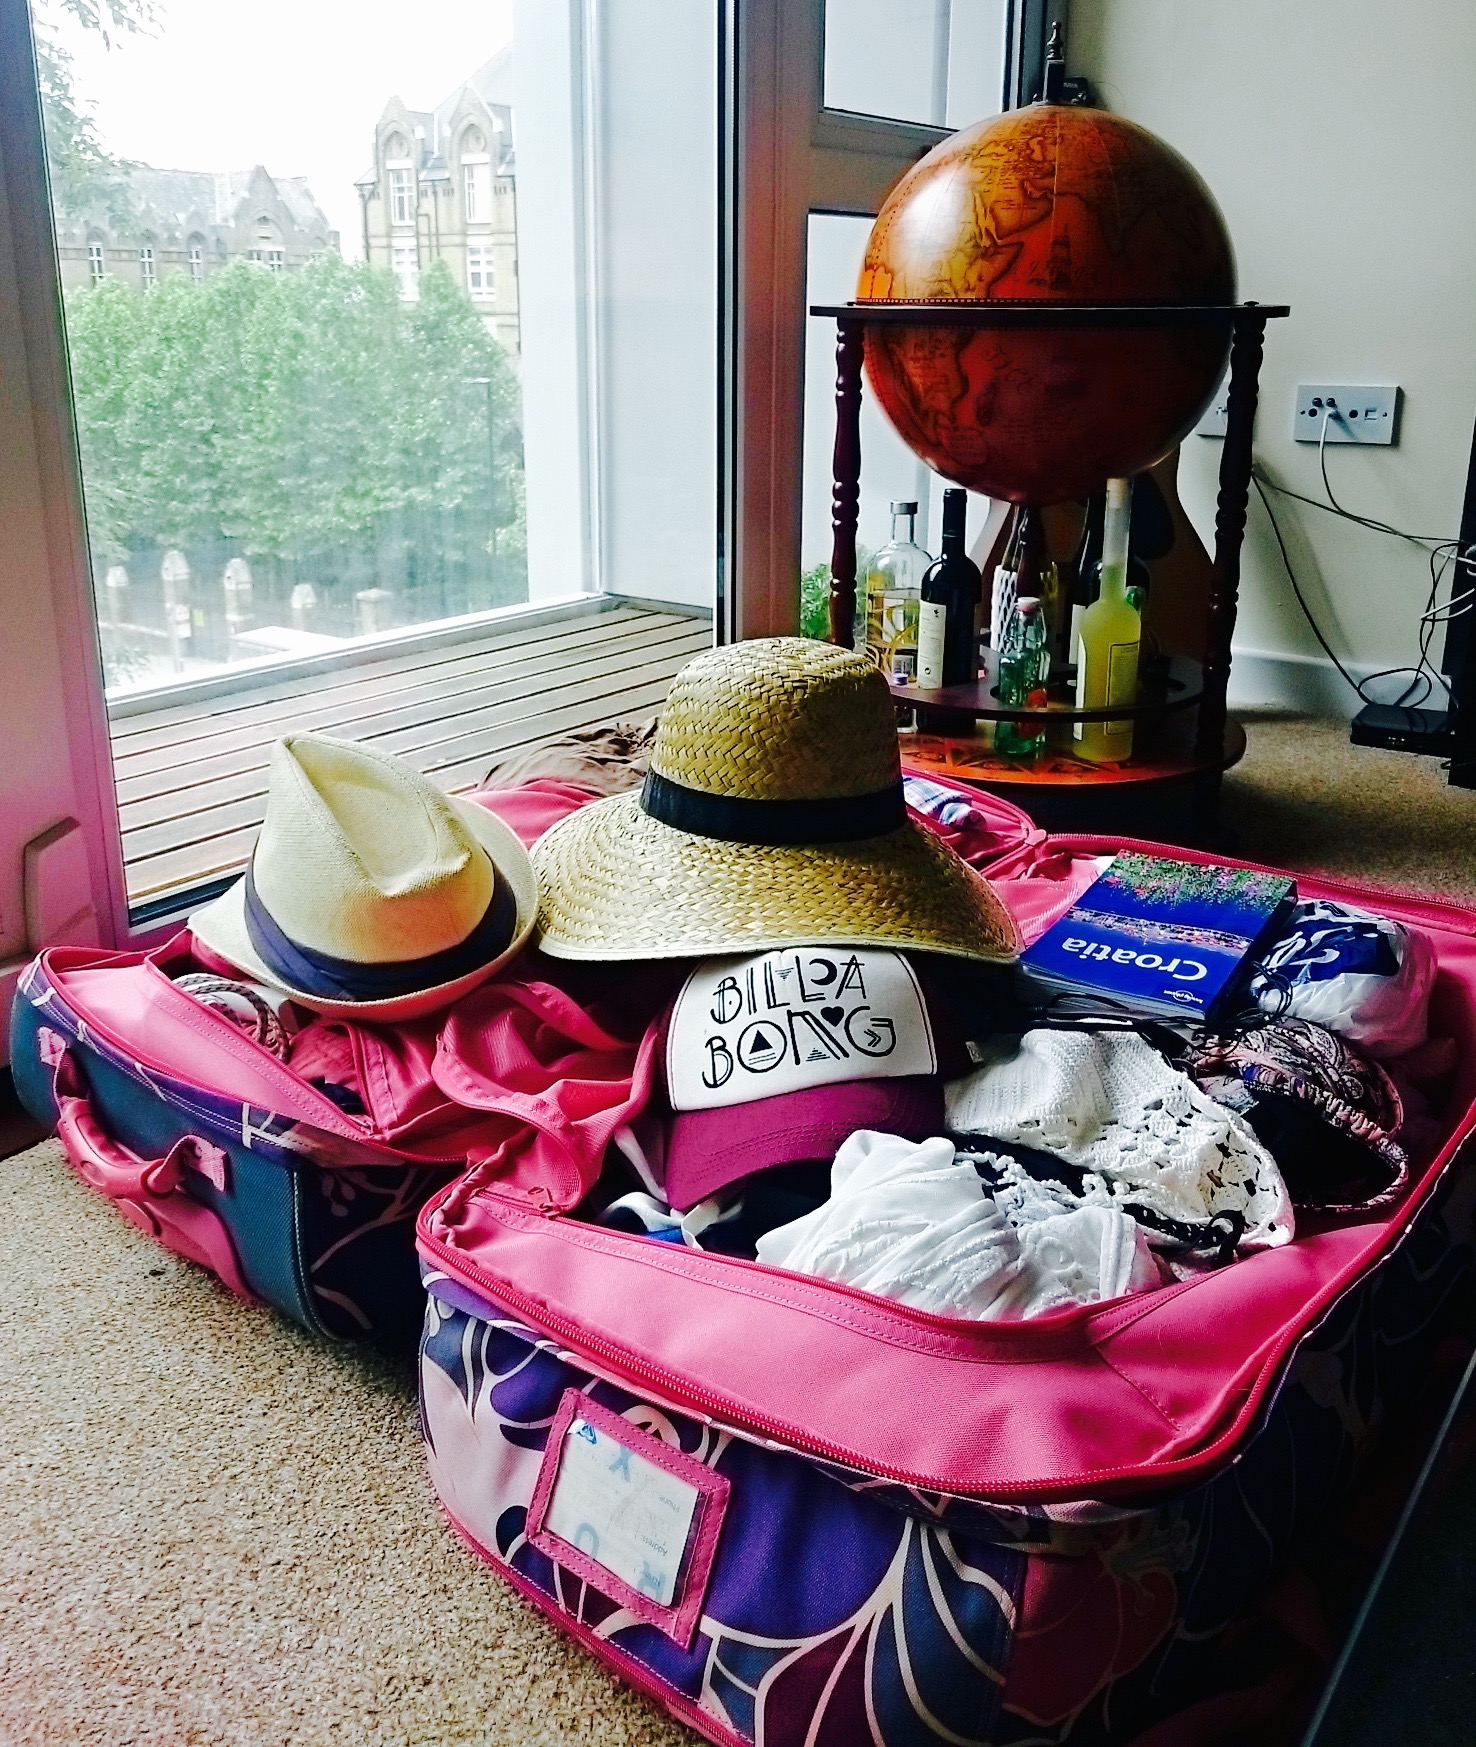 10 Essential Items To Pack For A Round The World Trip